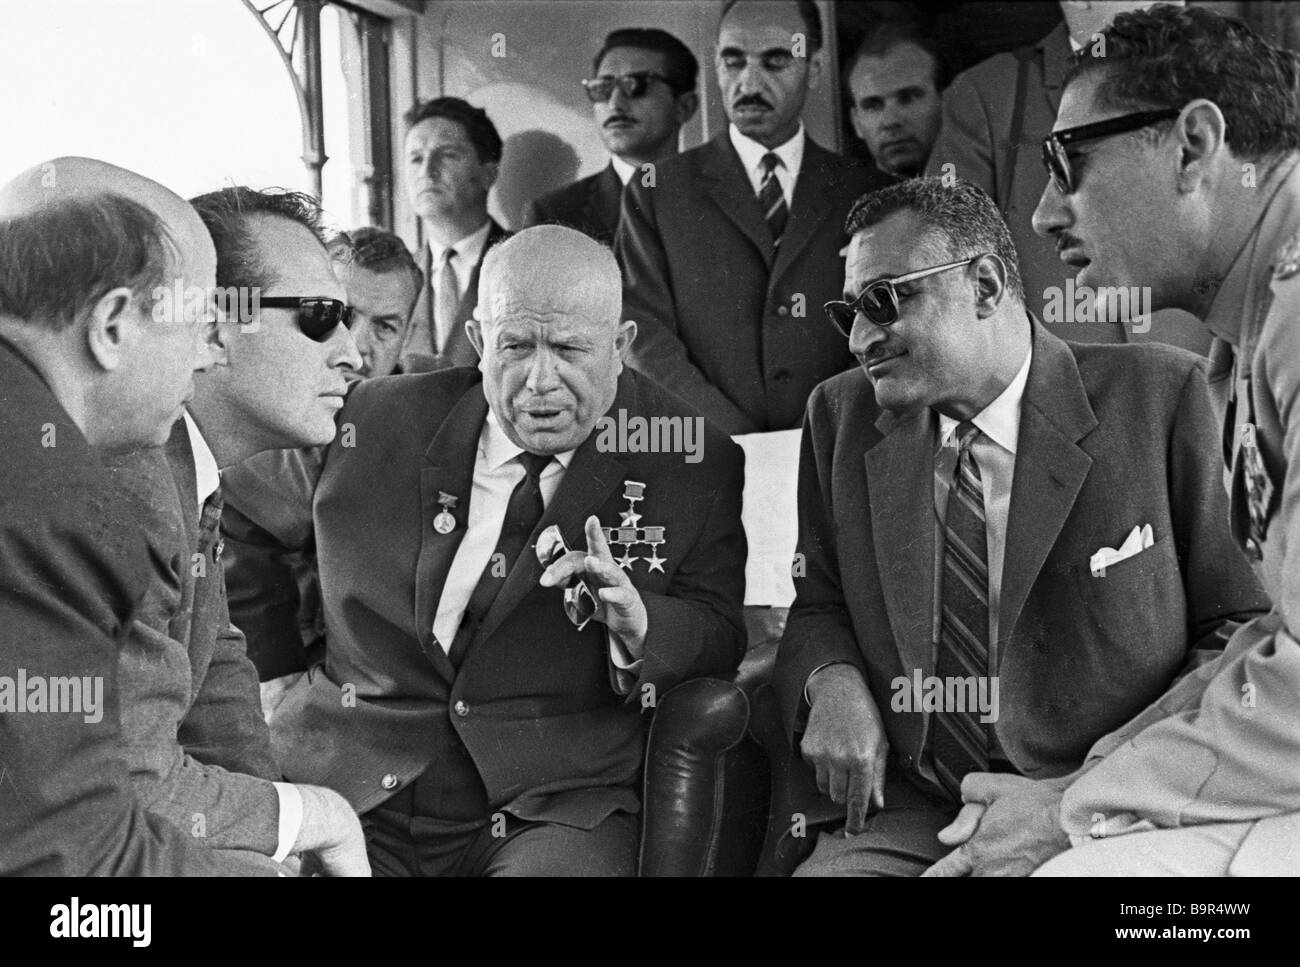 President of the UAR Gamal Abdel Nasser right is speaking with the CPSU Central Committee First Secretary Chairman - Stock Image